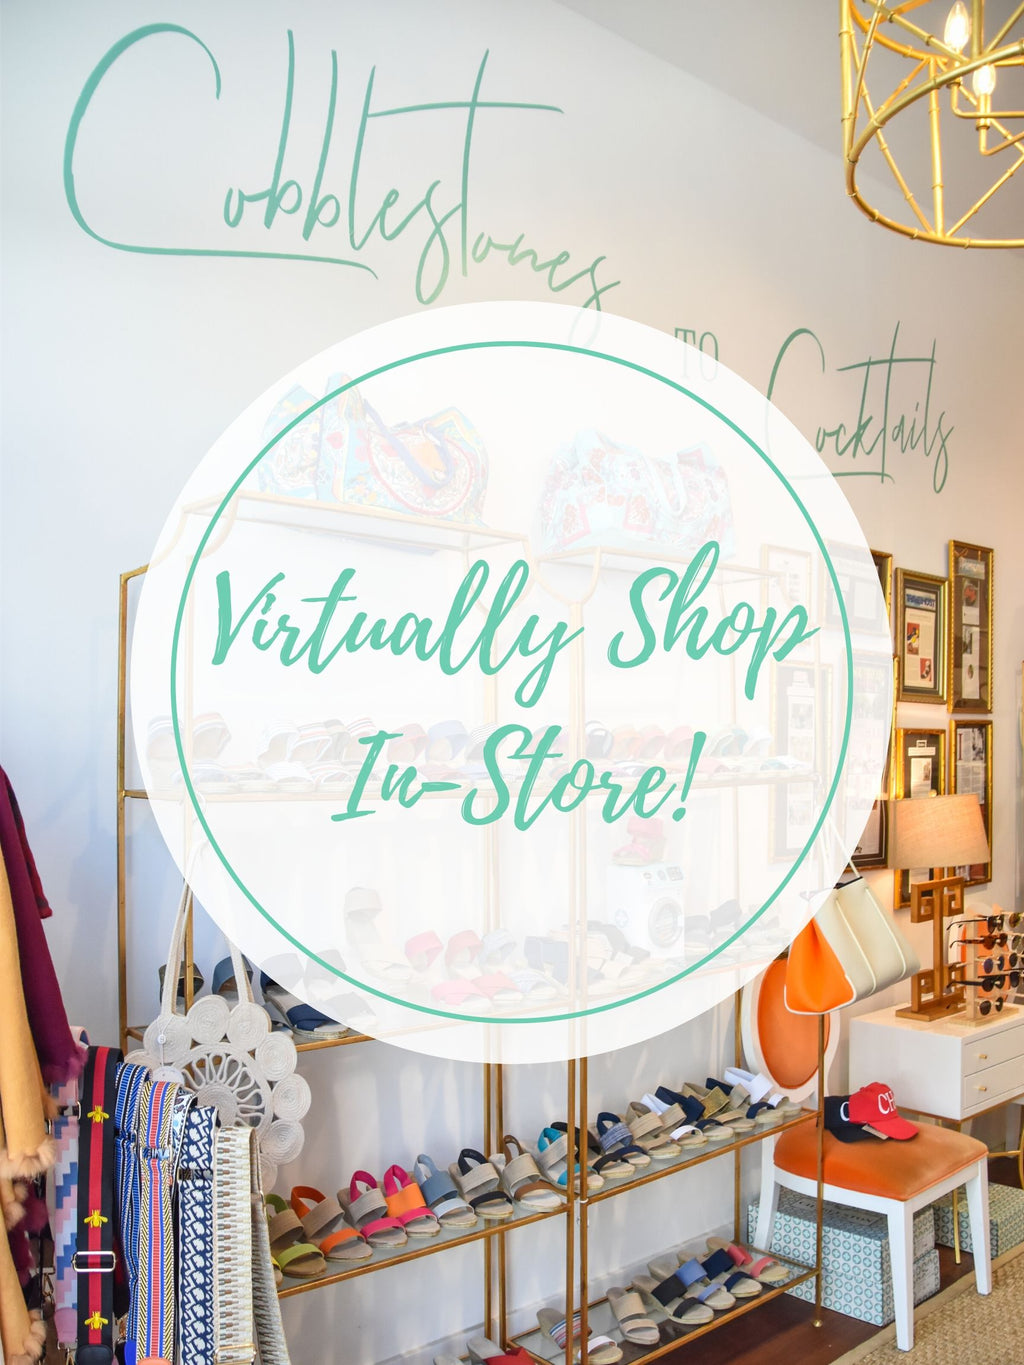 Virtually Shop In-Store!